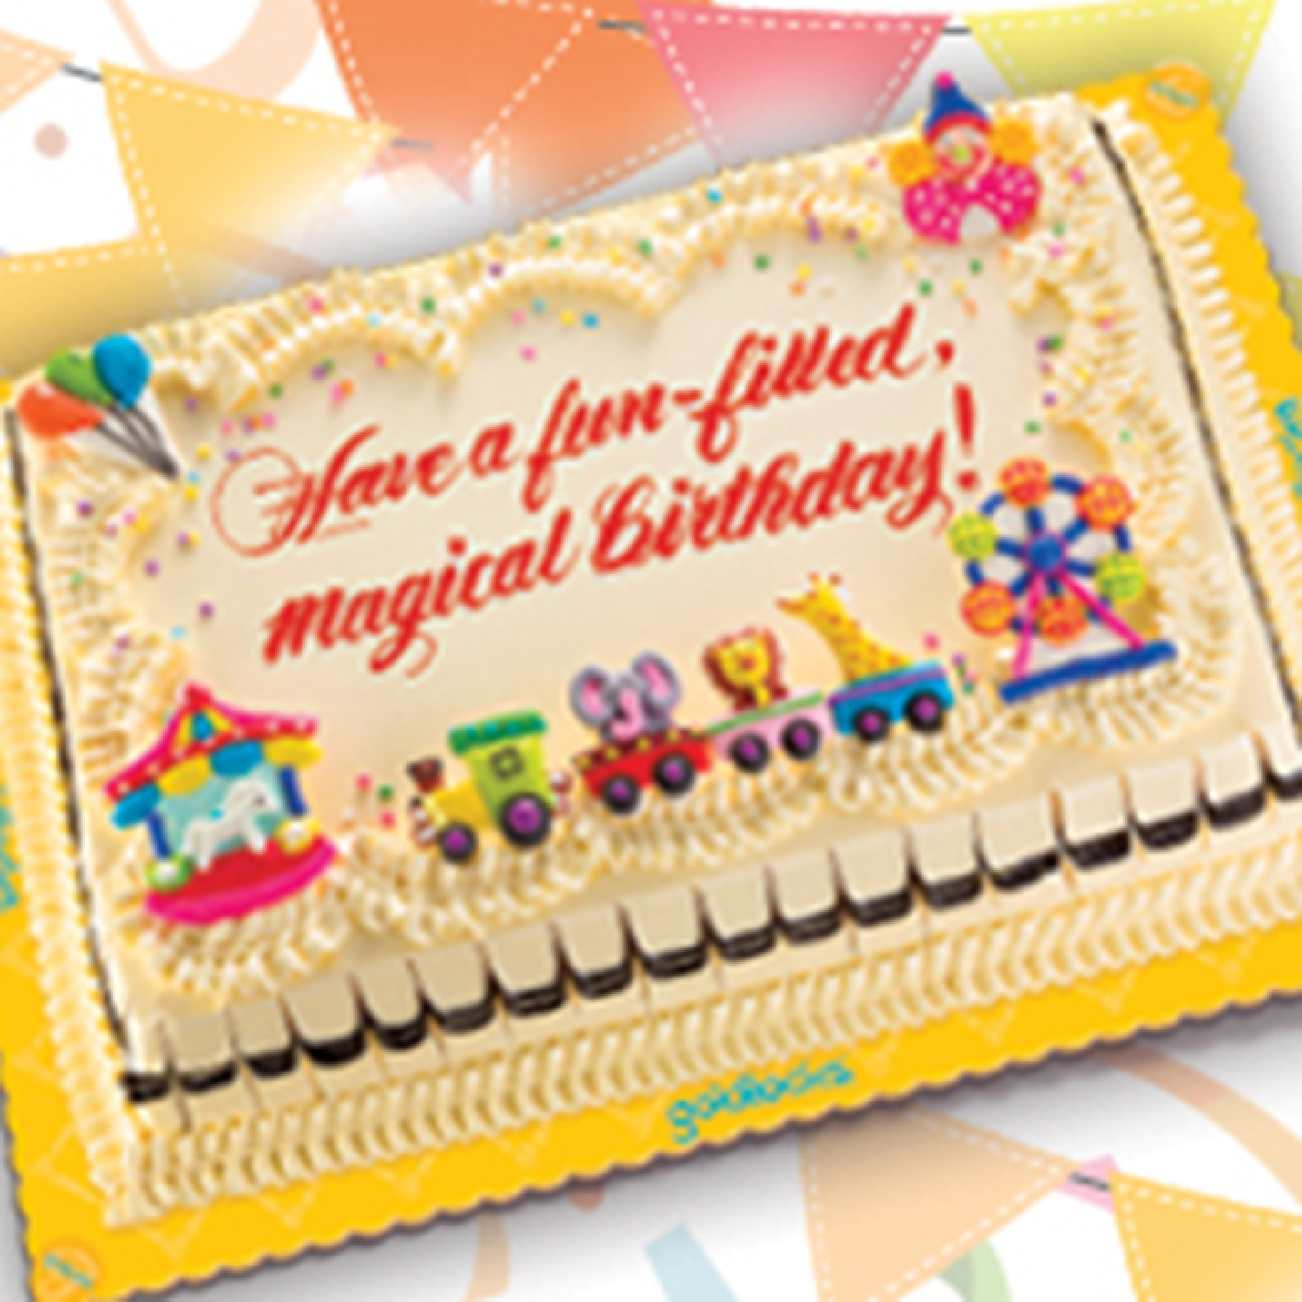 Calamo Carnival Theme Greeting Cake For Only P573 Available At